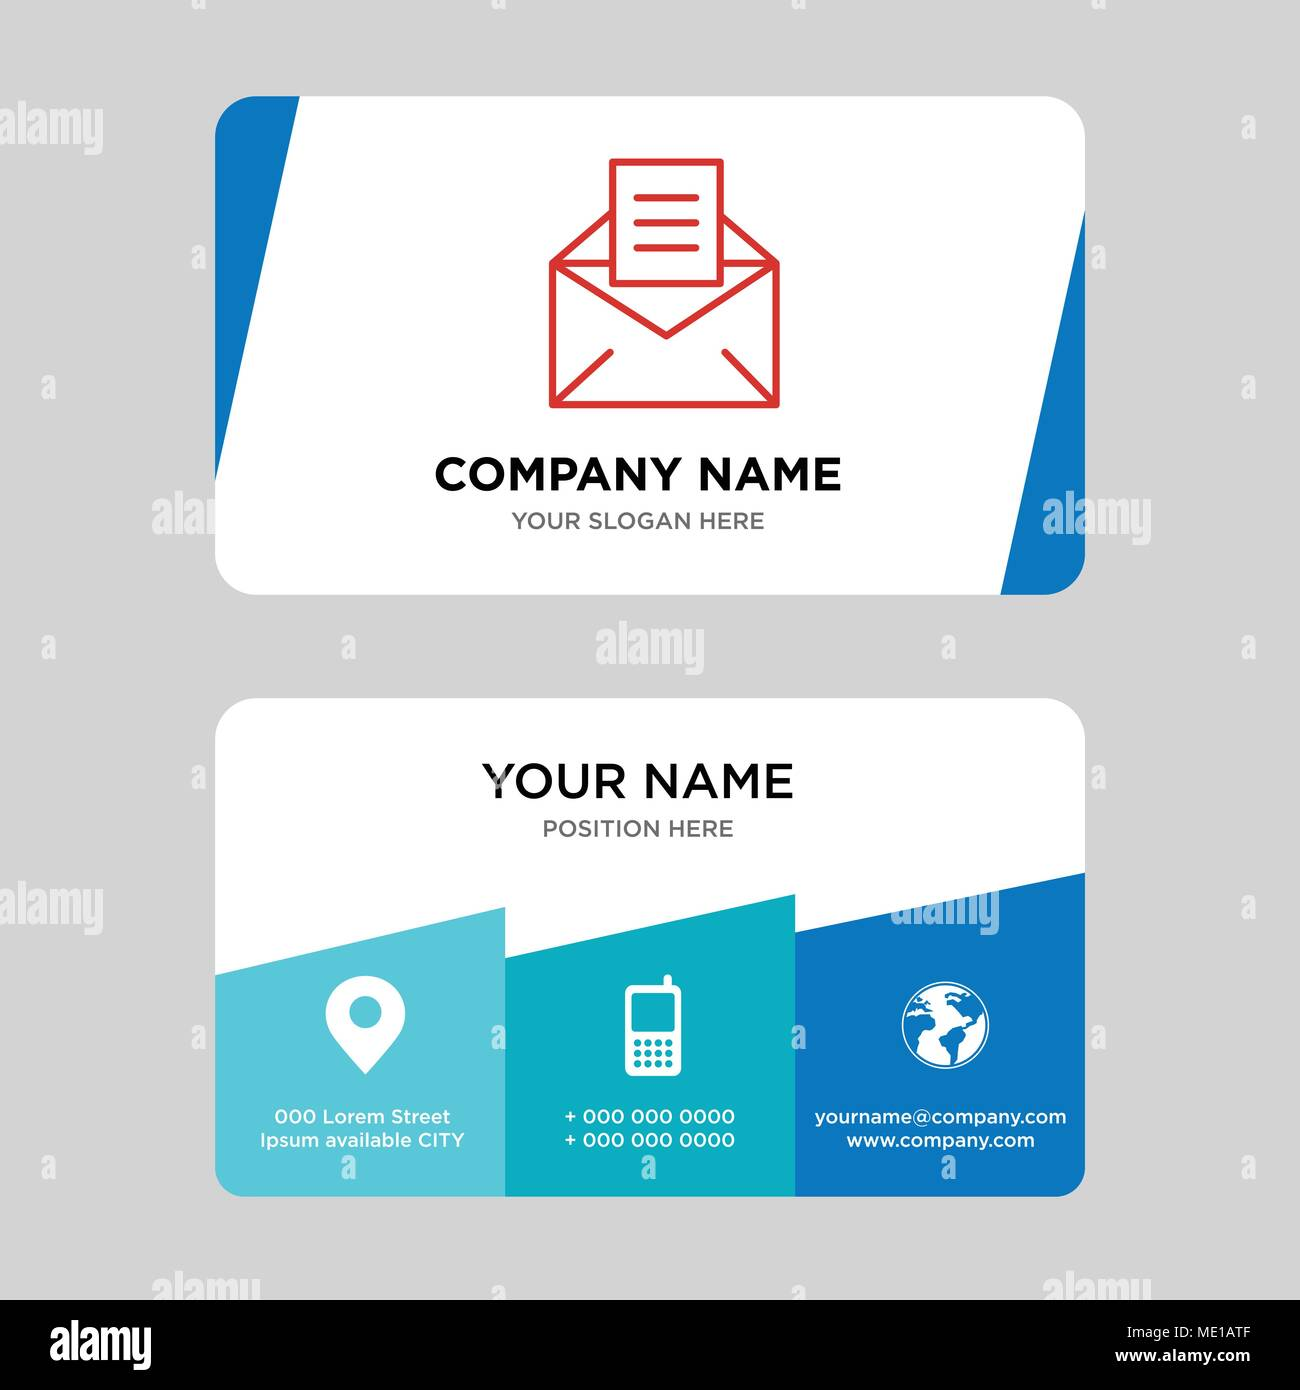 Mail vector logo design template stock photos mail vector logo email business card design template visiting for your company modern creative and clean identity colourmoves